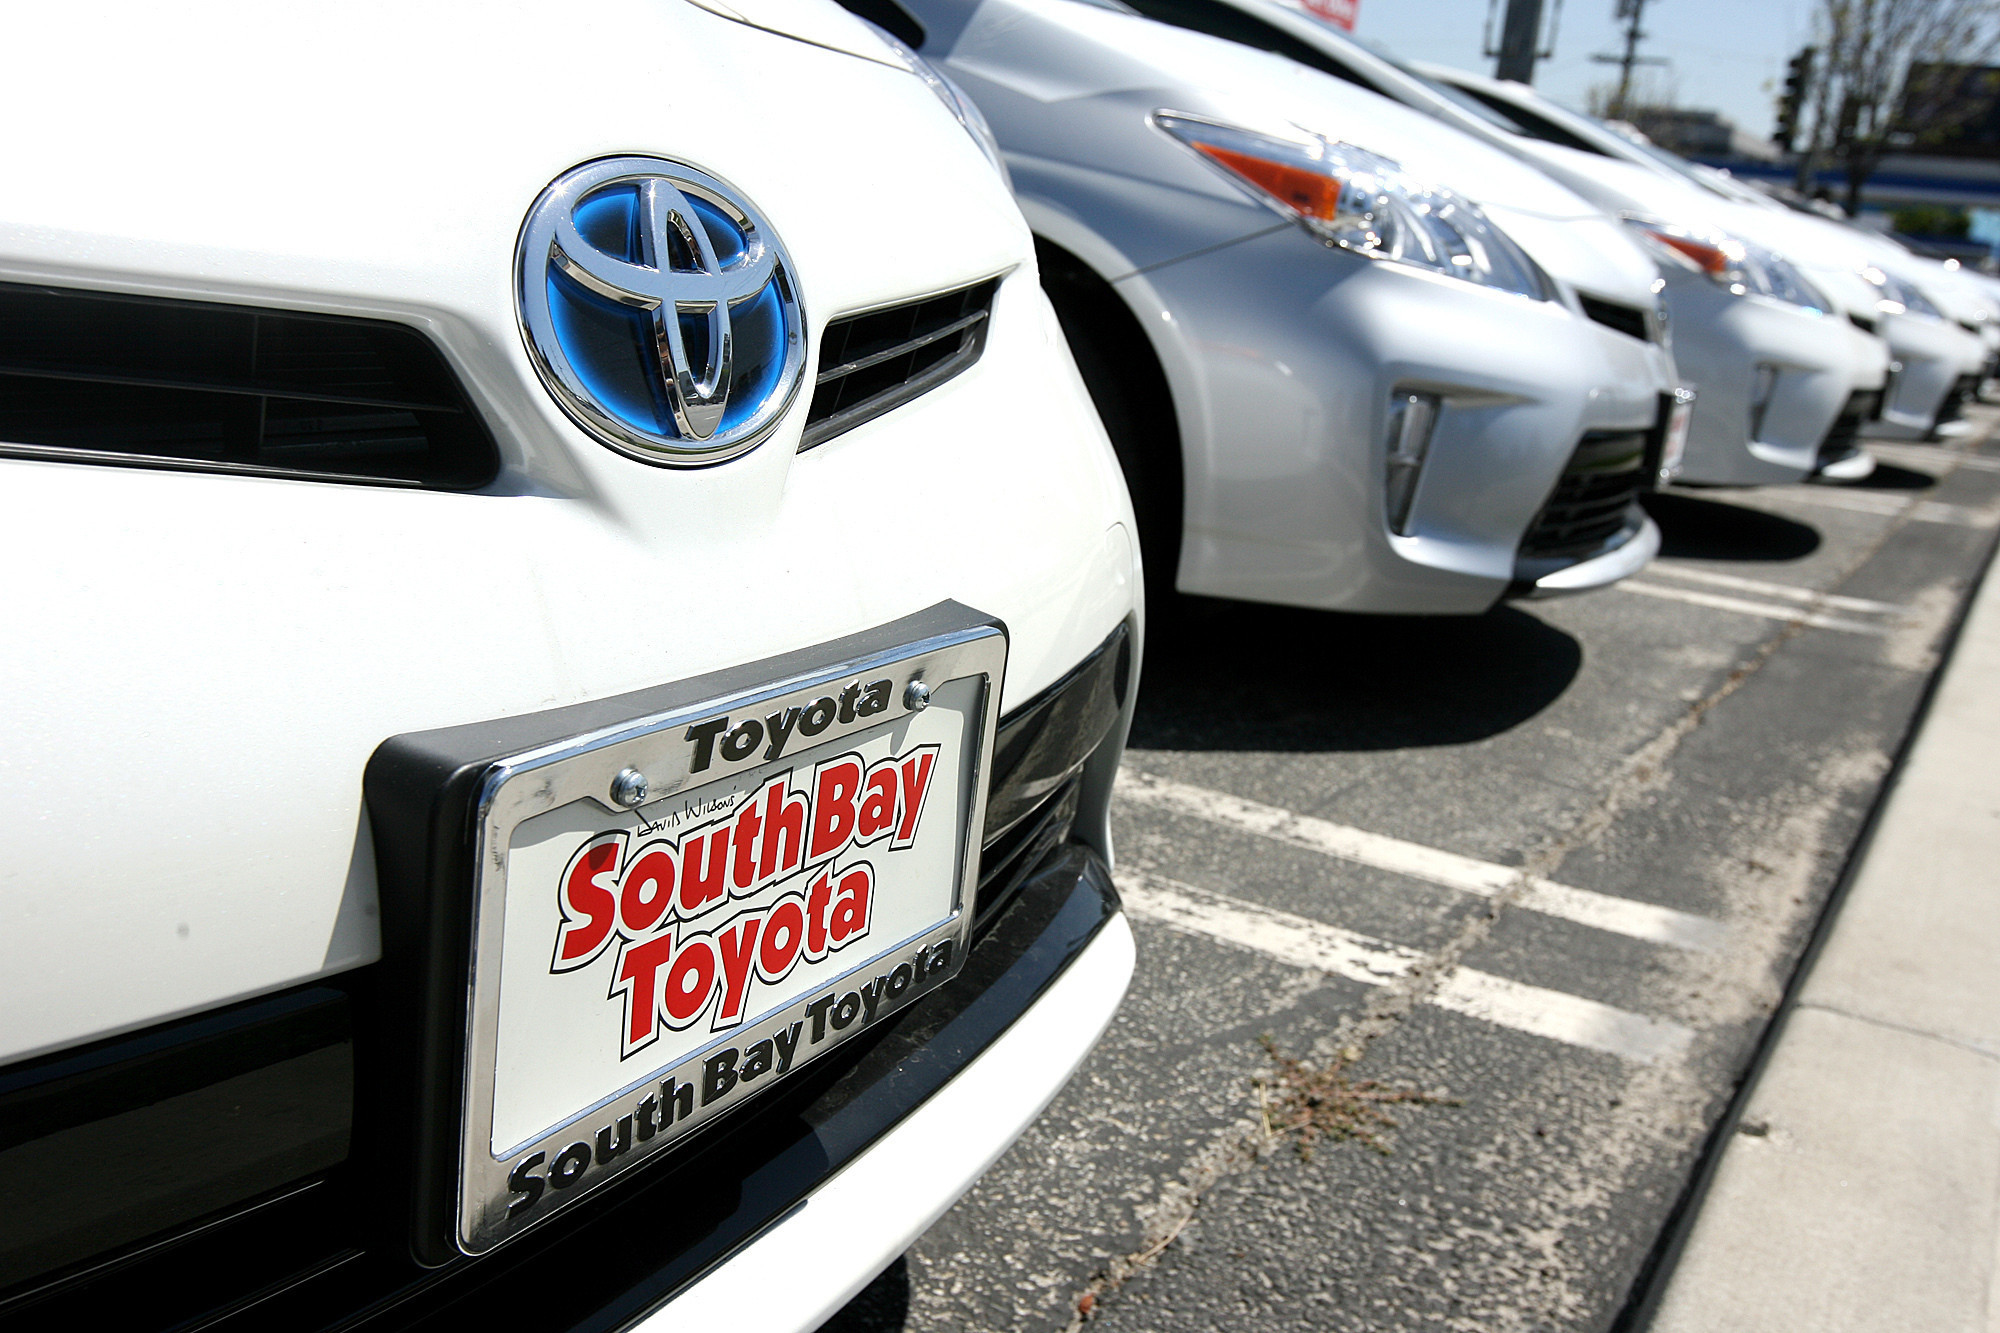 toyota trades in socal for macho texas that just ain t right toyota trades in socal for macho texas that just ain t right la times